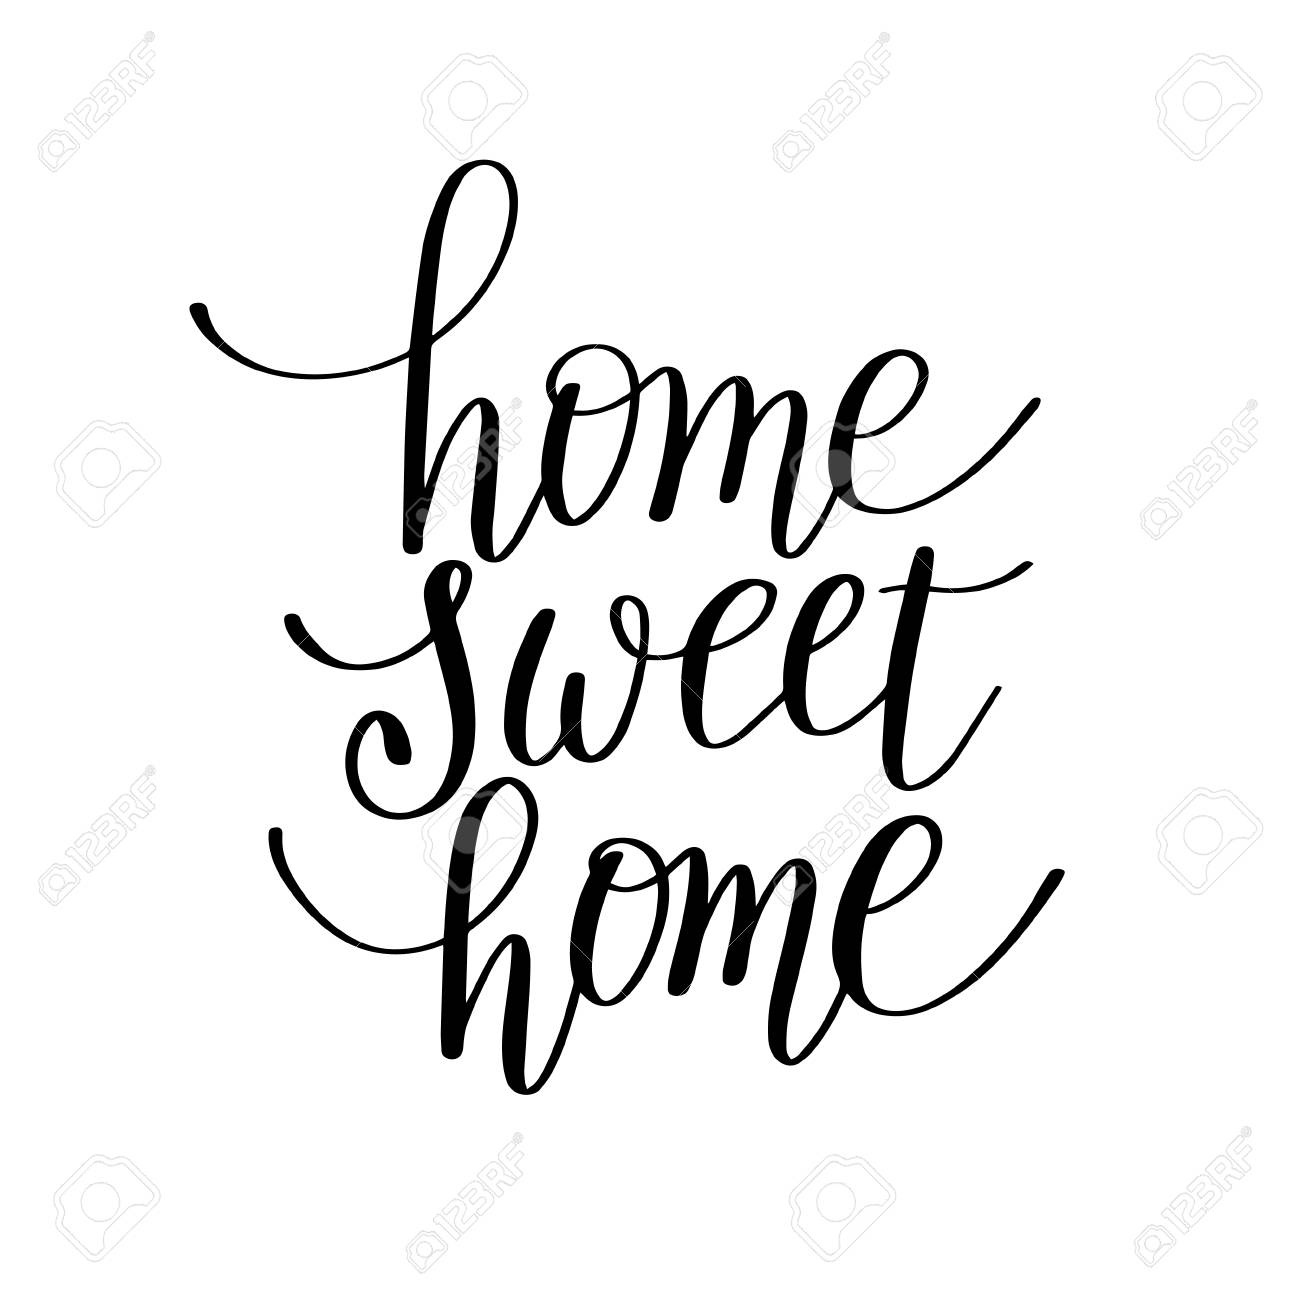 Home Sweet Home Handwritten Calligraphy Lettering Quote To Design - Home Sweet Home Free Printable